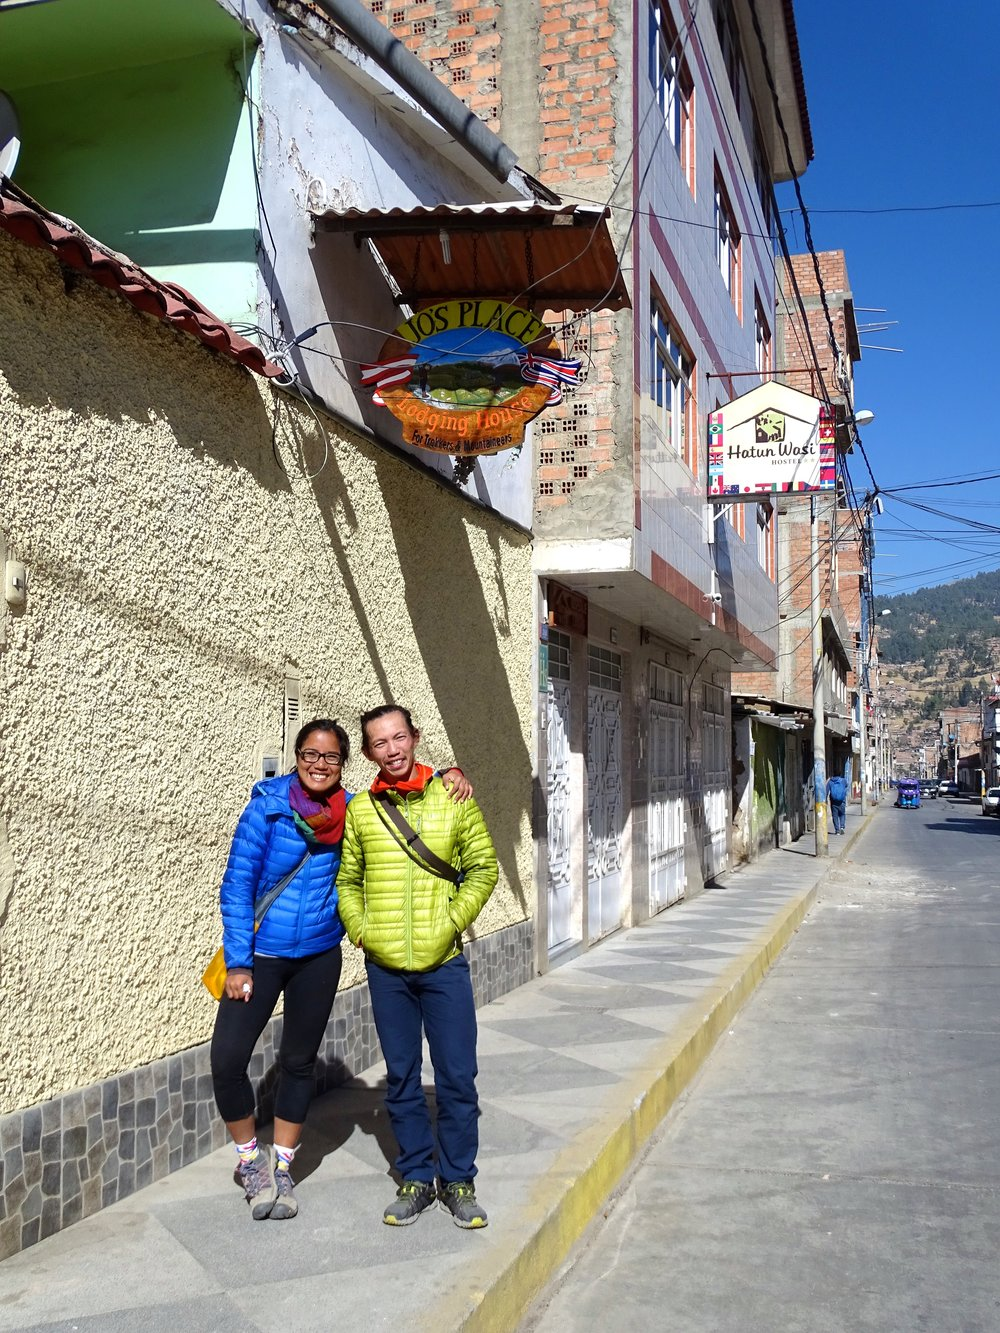 We first met RTW bicyclists Dean and Dawn (right?) in San Agustin, Colombia, and as happened so many times, we had another chance encounter in Huaraz!